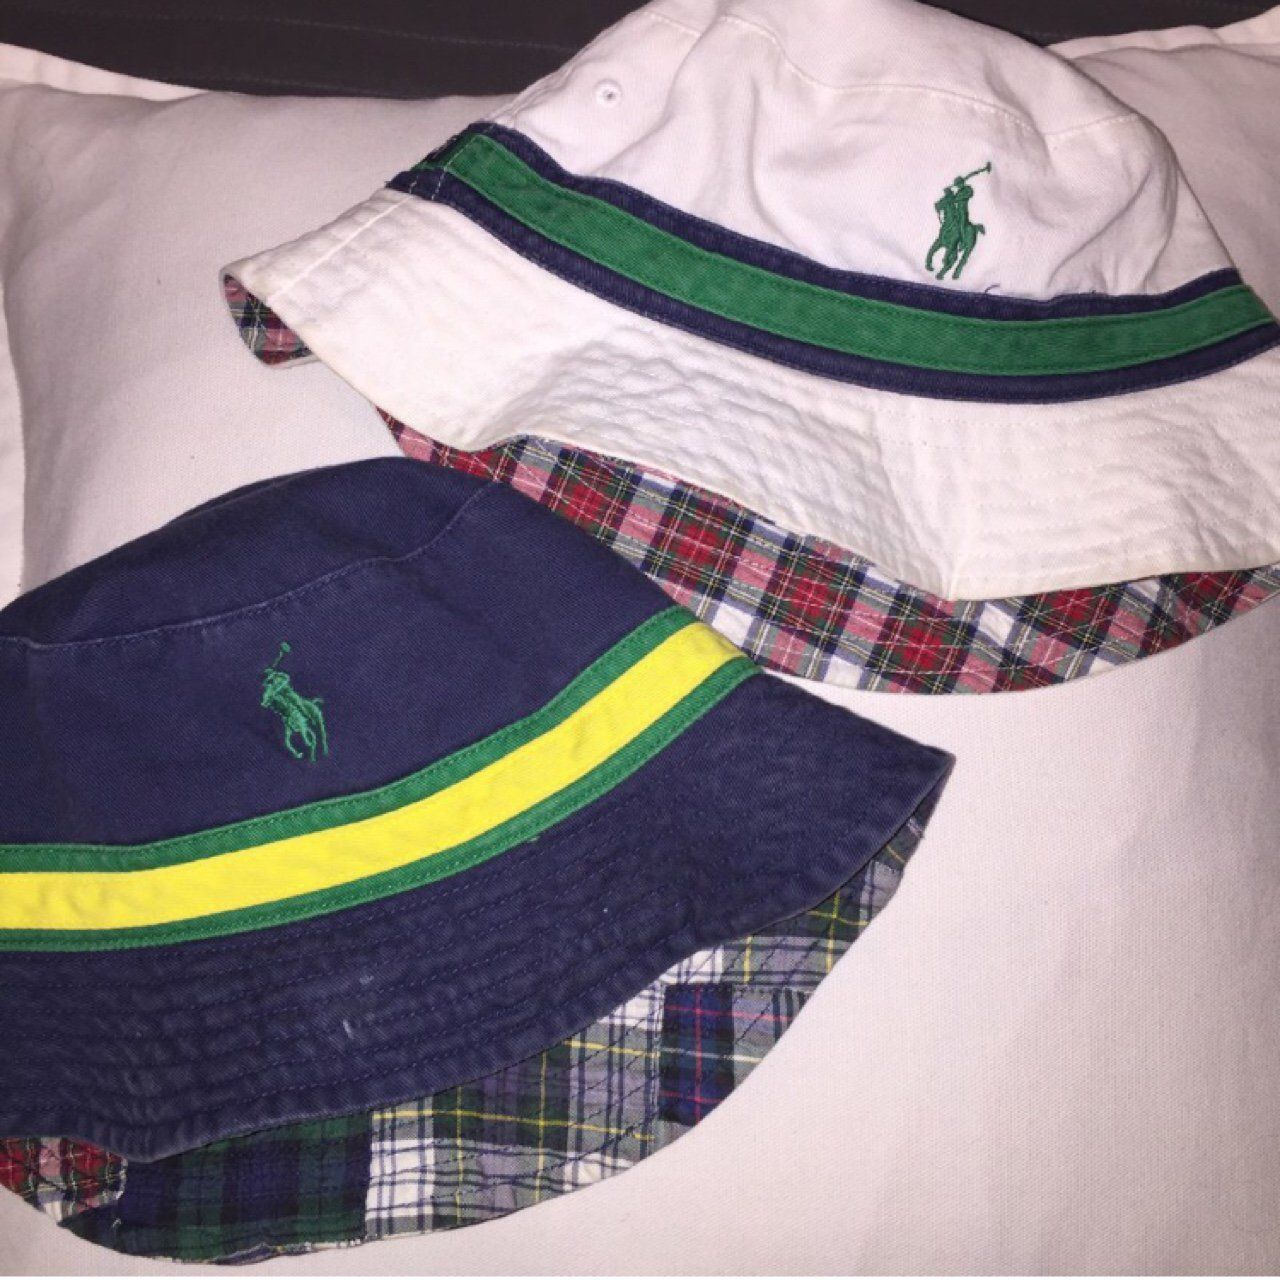 f810bc1c @d1zl4. 2 years ago. Bristol, United Kingdom. VINTAGE POLO RALPH LAUREN  NAVY BLE WITH YELLOW STRIPE BUCKET HAT // OSFA // REVERSIBLE ...